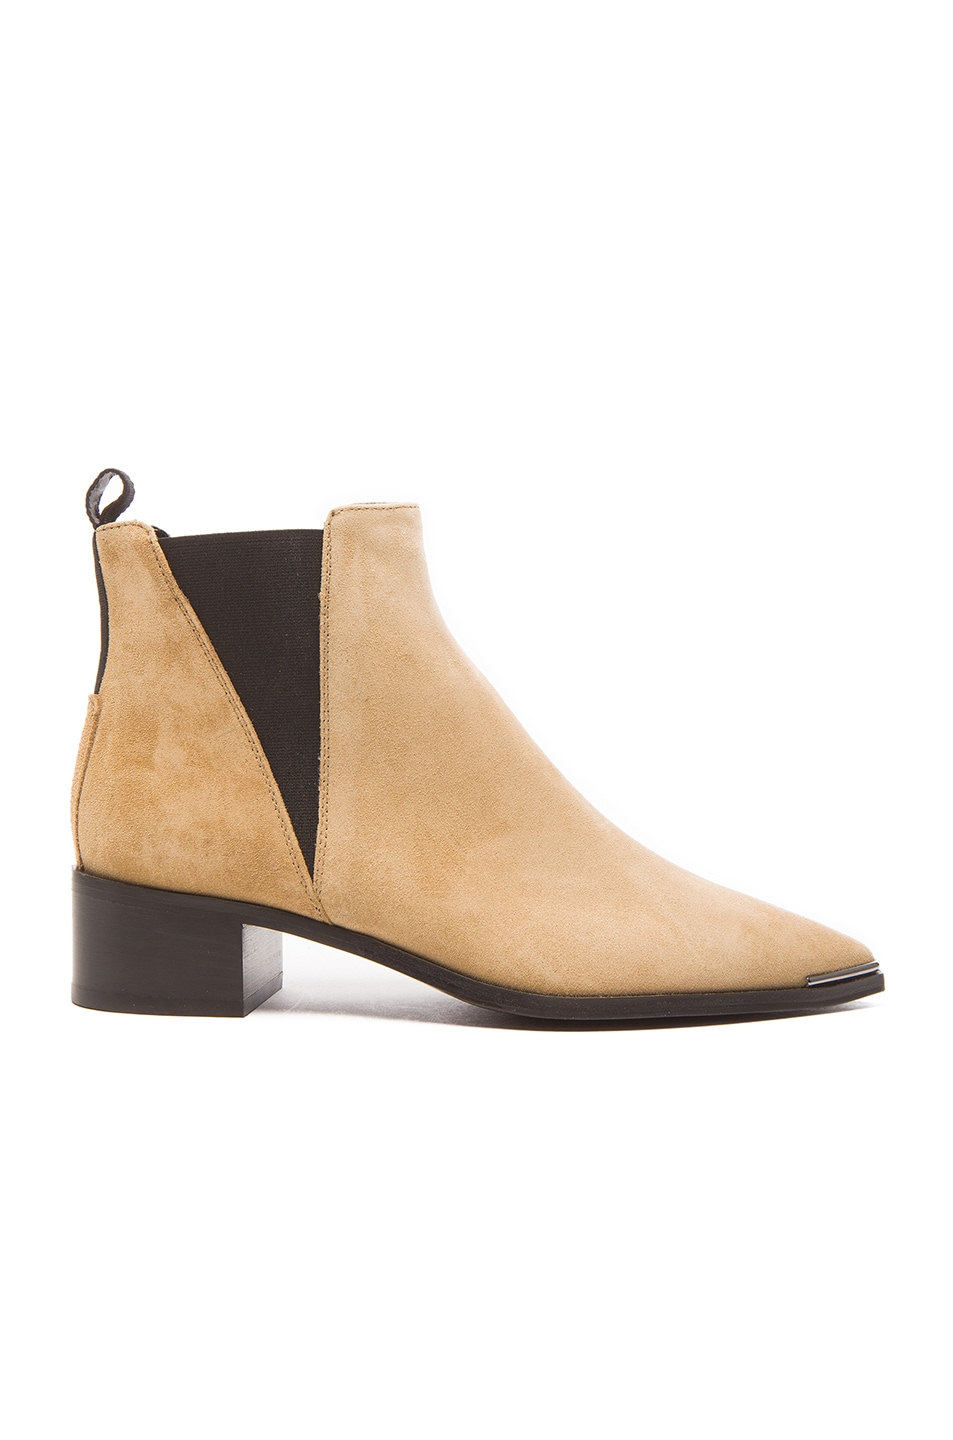 Image 1 of Acne Studios Jensen Suede Booties in Beige